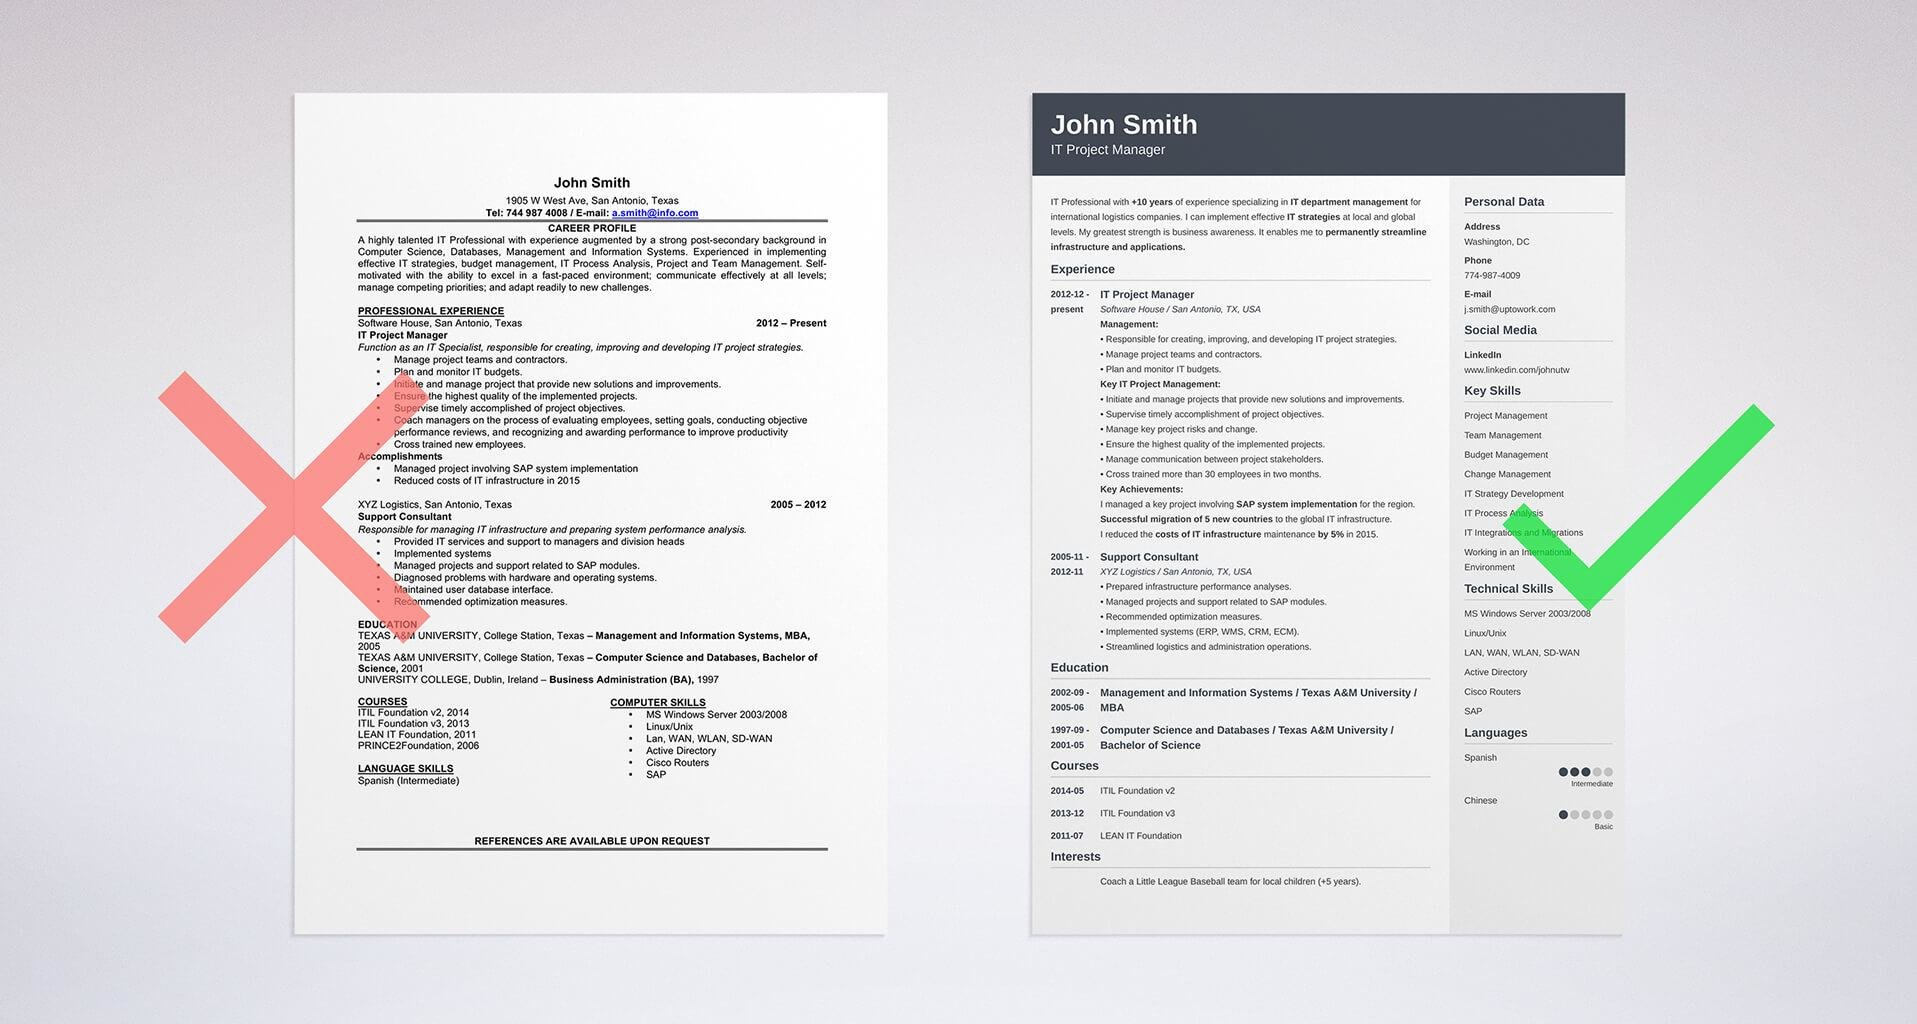 resume formats pick the best one in 3 steps examples templates - What Is The Best Resume Format